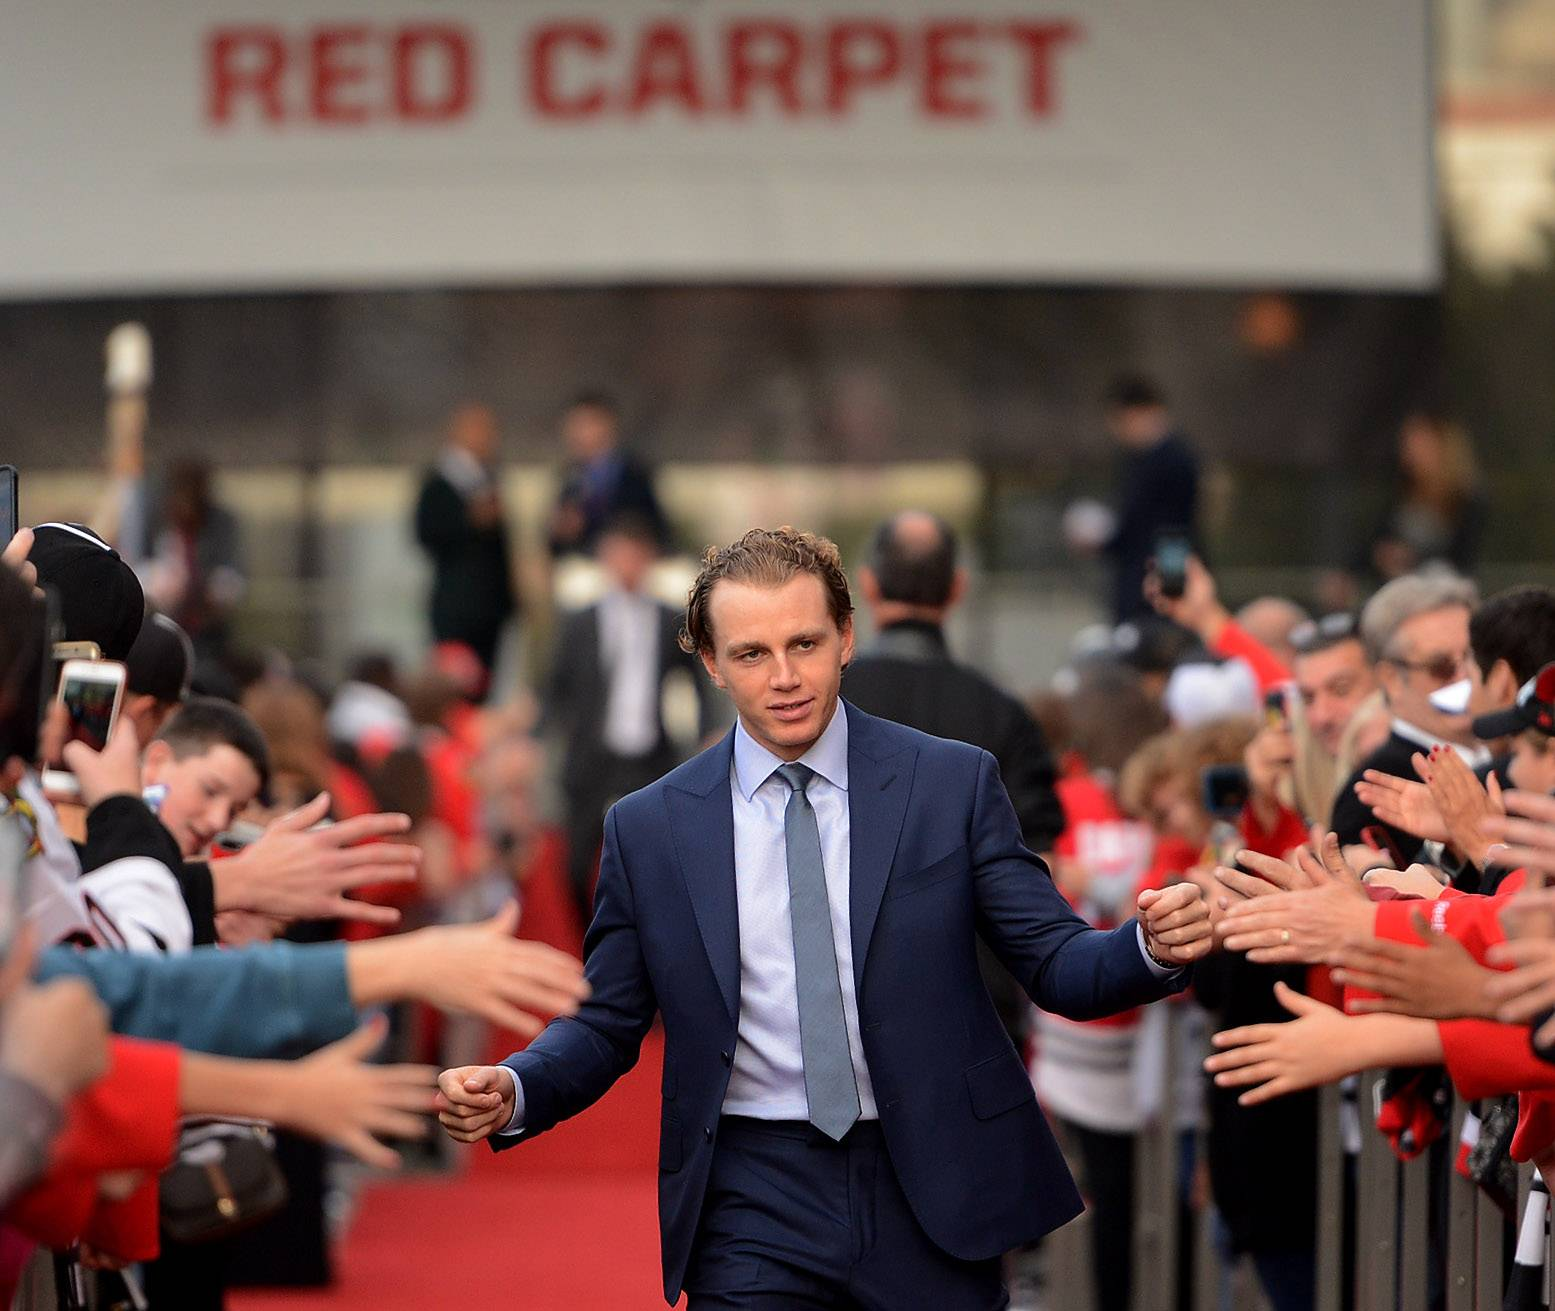 Bob Chwedyk/bchwedyk@dailyherald.comChicago Blackhawks right wing Patrick Kane during the red carpet ceremony before the Blackhawks home opener against the Penguins.